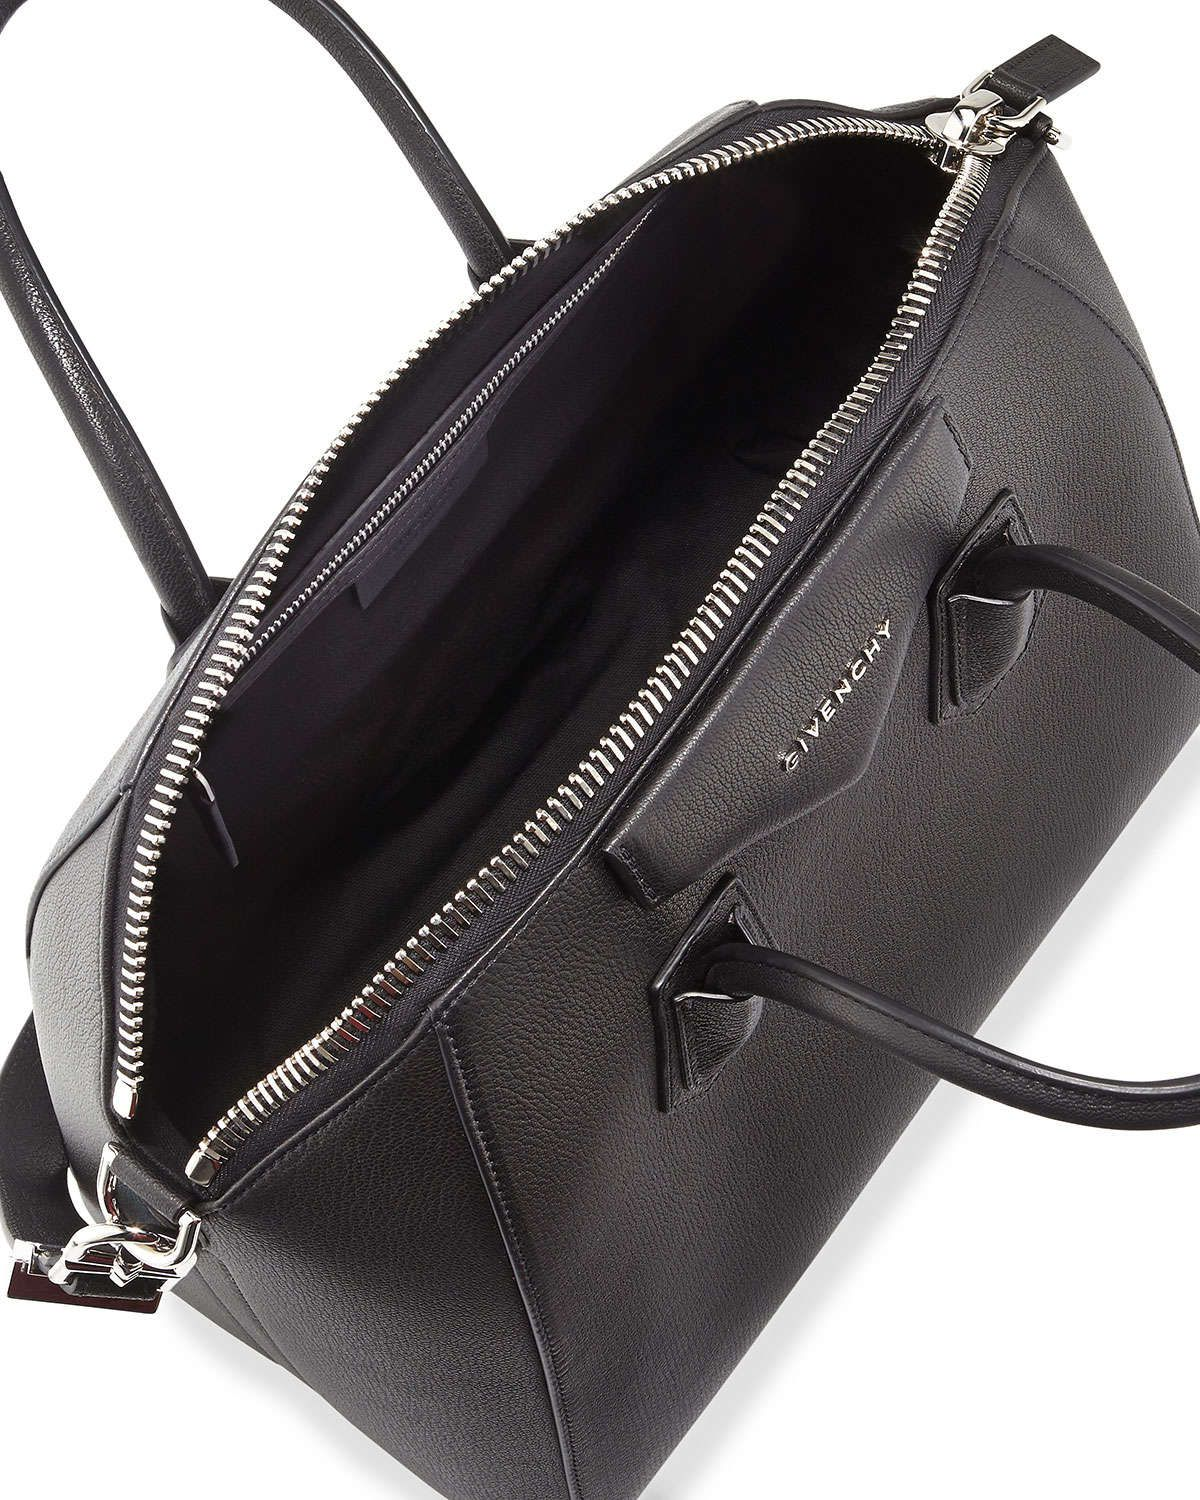 8d0b1fda09a60 Givenchy Antigona Medium Sugar Goatskin Satchel Bag | Givenchy ...